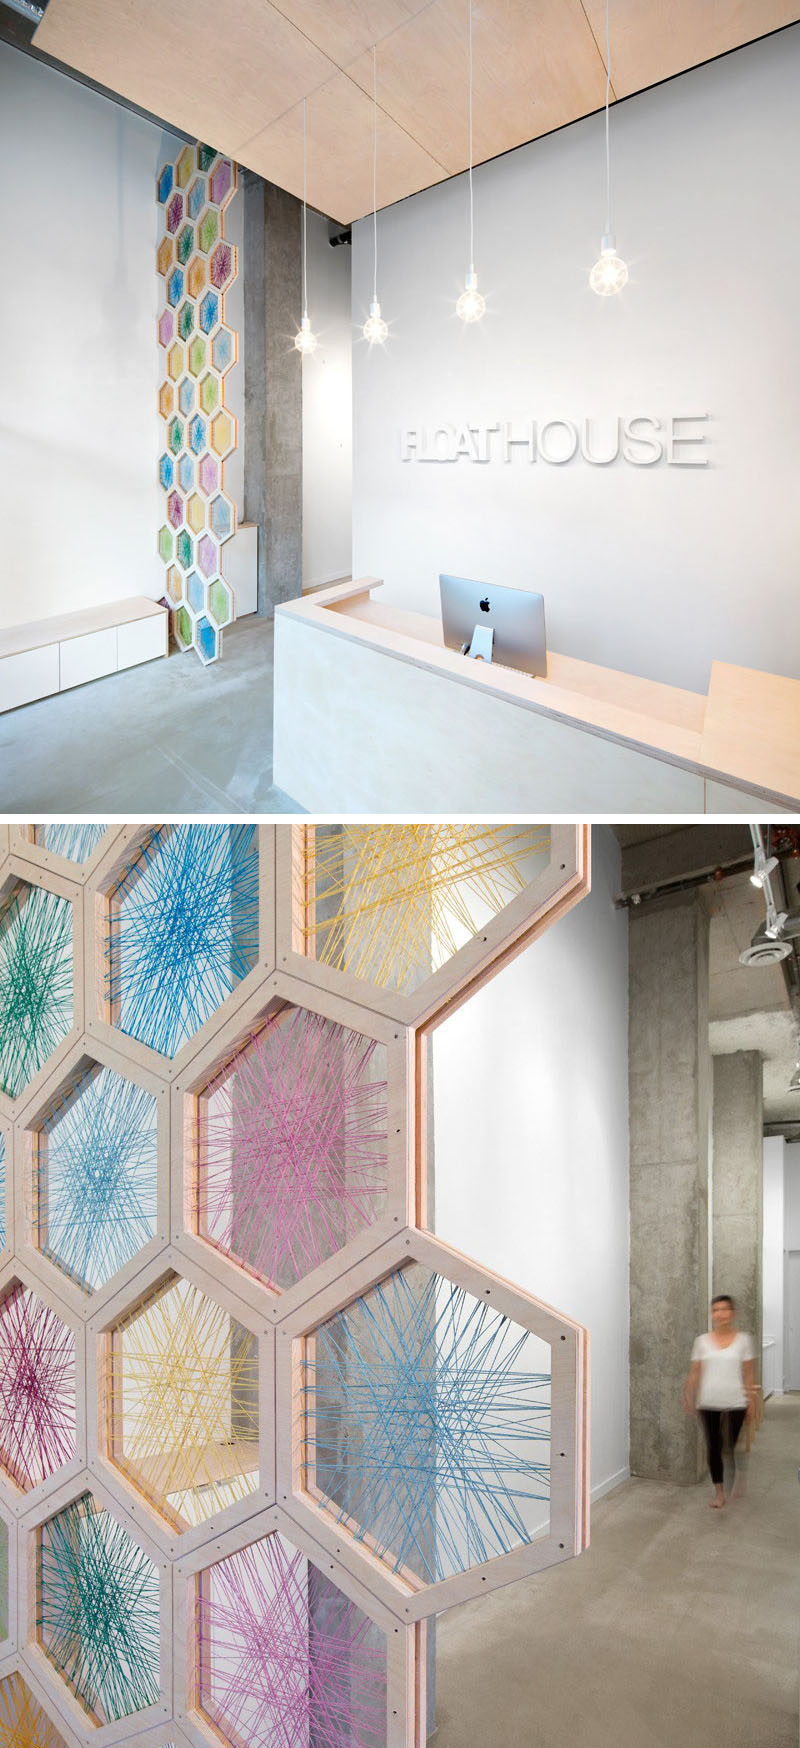 hexagons applied to contemporary architecture beautiful interior design for houses and building